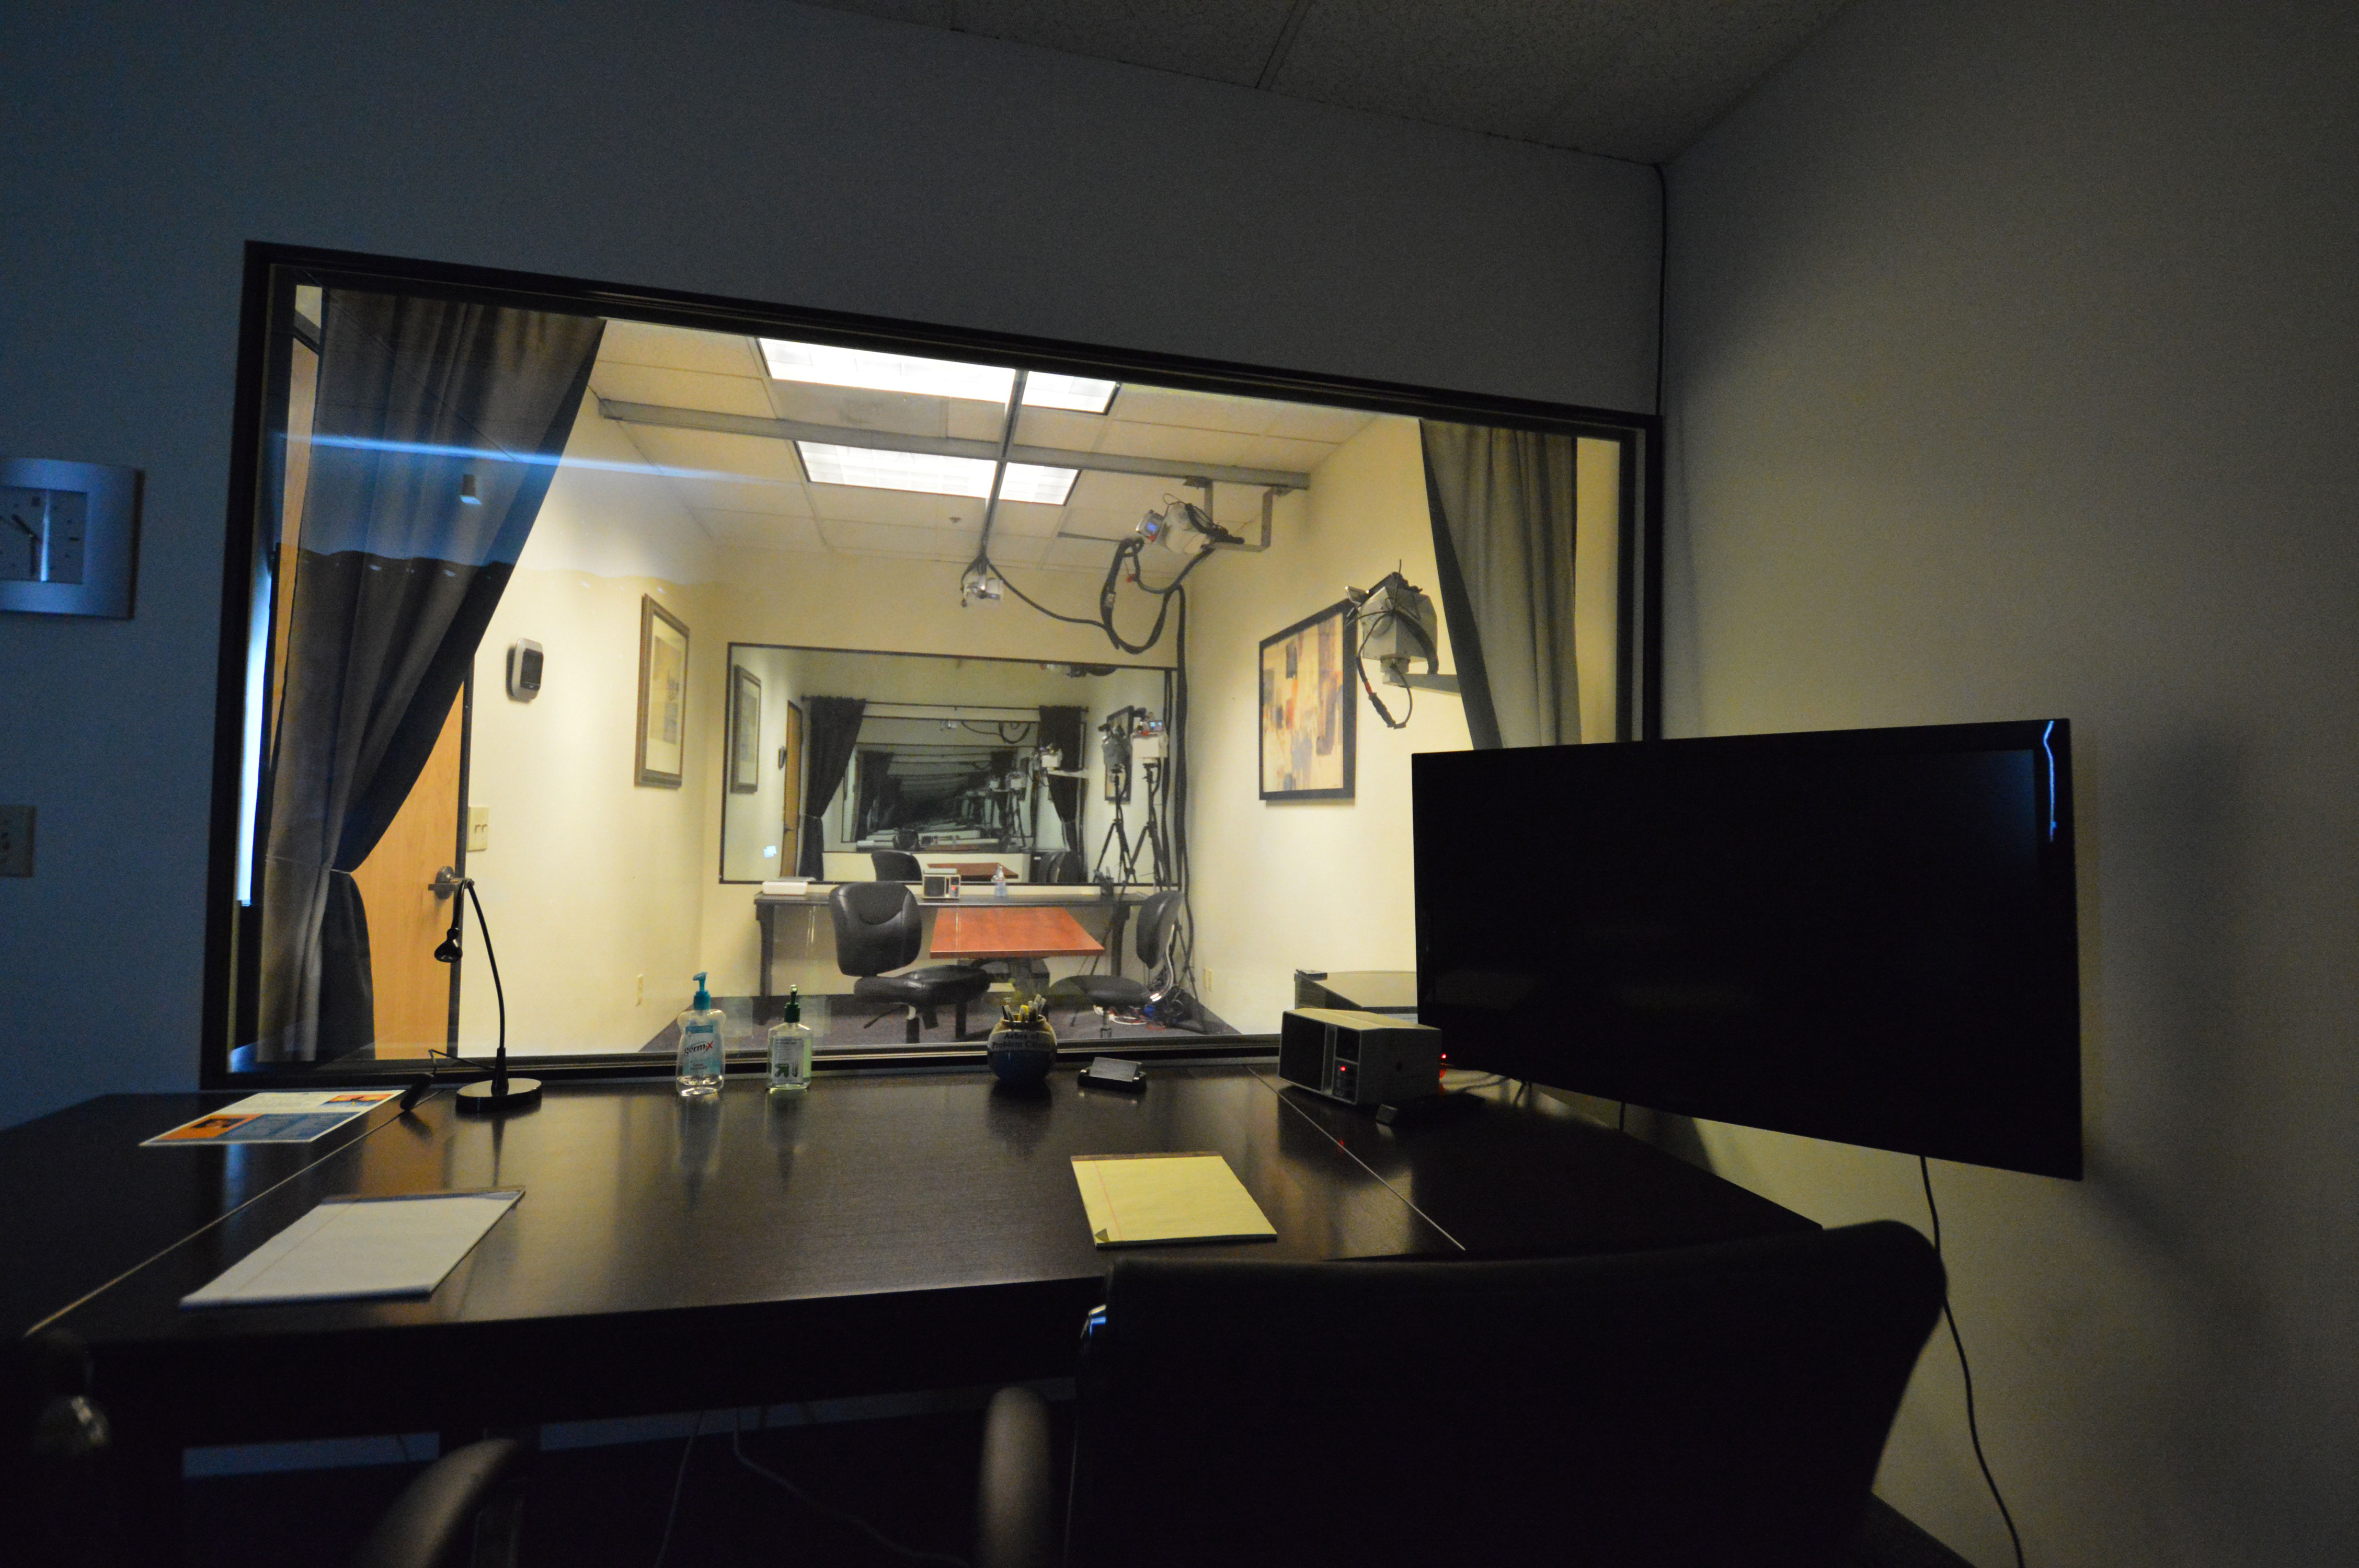 Saratoga Testing Facilities - Clients Observation Room